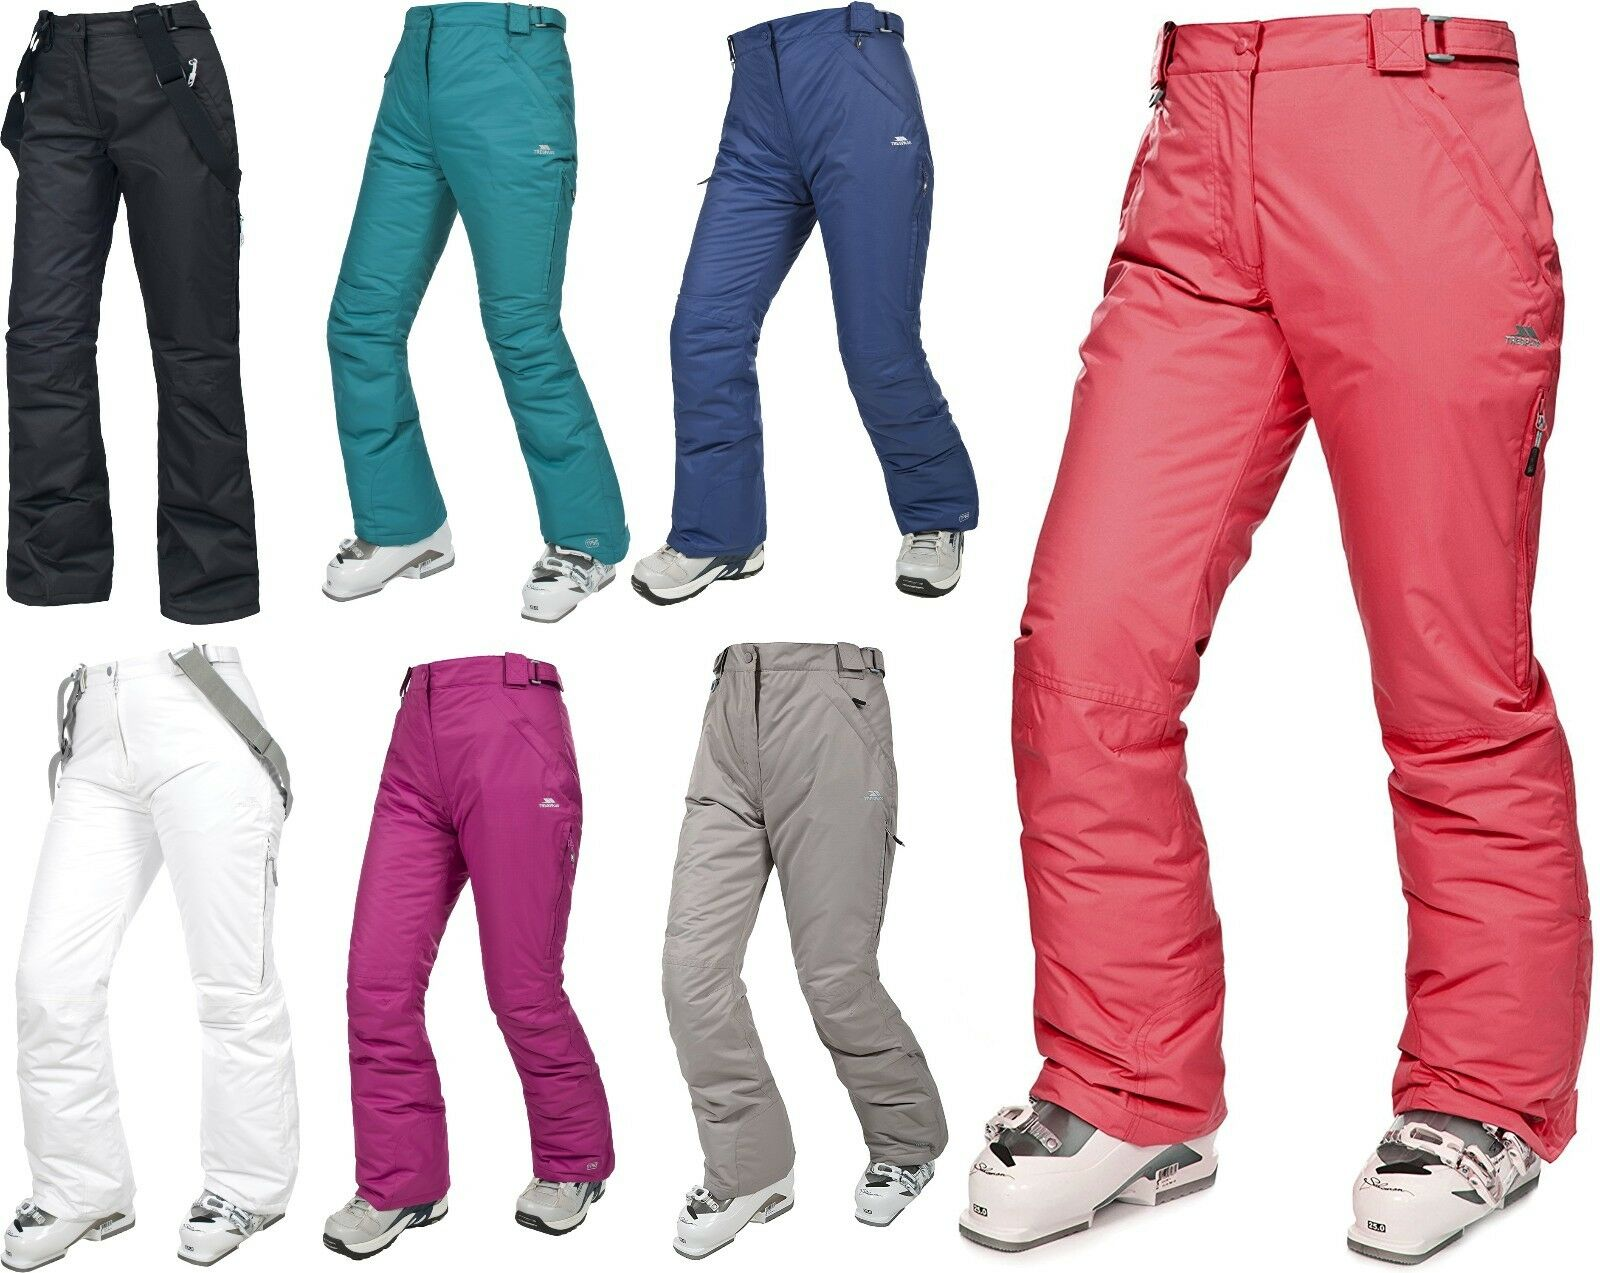 TRESPASS WOMENS LOHAN SKI SNOW WATERPROOF PANT REGULAR INSEAM TAPED SEAM 5000 MM